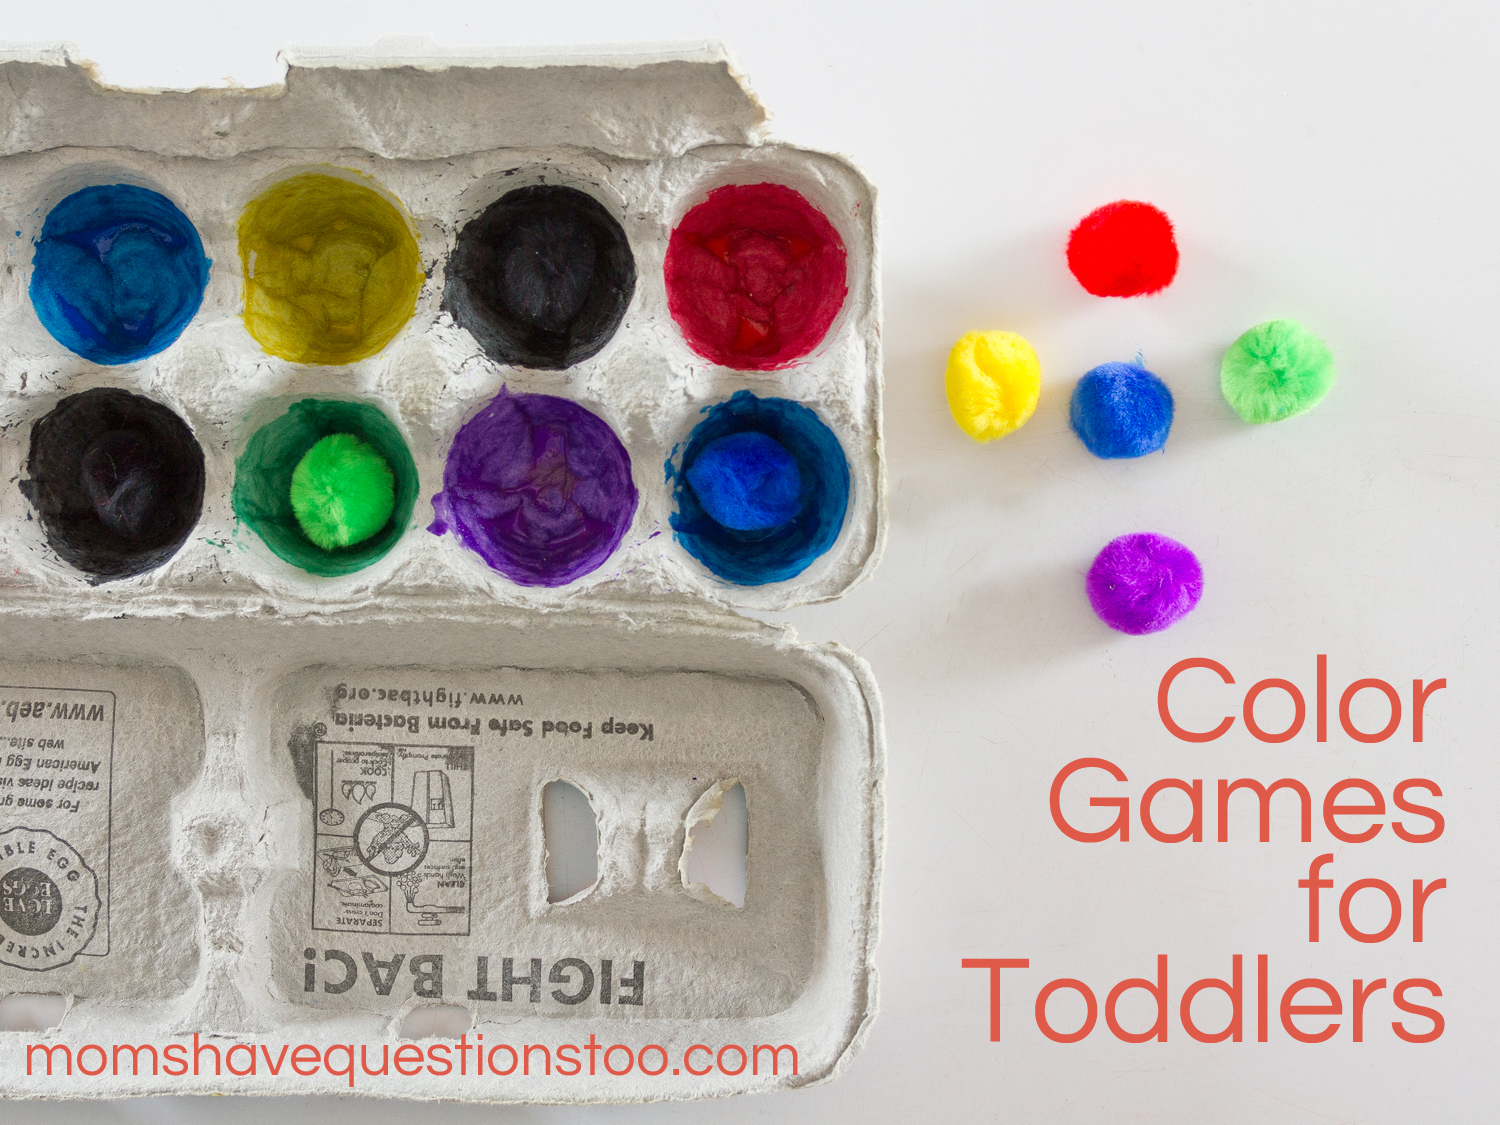 Color Games for Toddlers Part 1 - Moms Have Questions Too